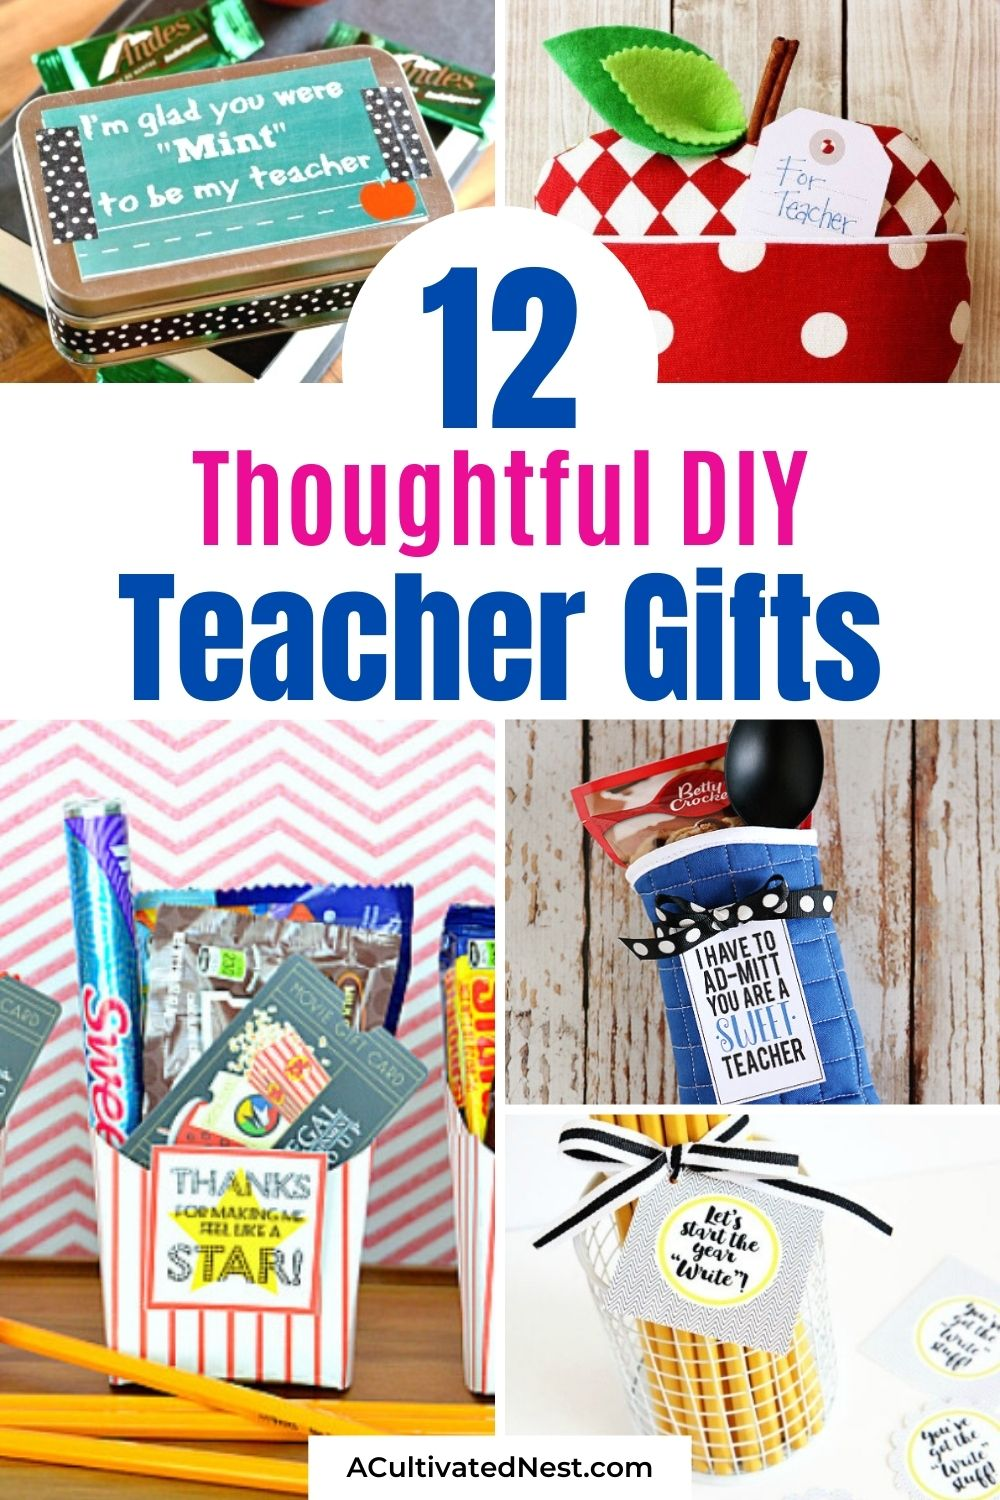 12 Brilliant Back To School DIY Teacher Gifts- Back to school is right around the corner! I've collected some of my favorite DIY gifts for teachers that I'm sure they will love! | #diyGifts #backToSchool #giftsForTeachers #homemadeGifts #ACultivatedNest